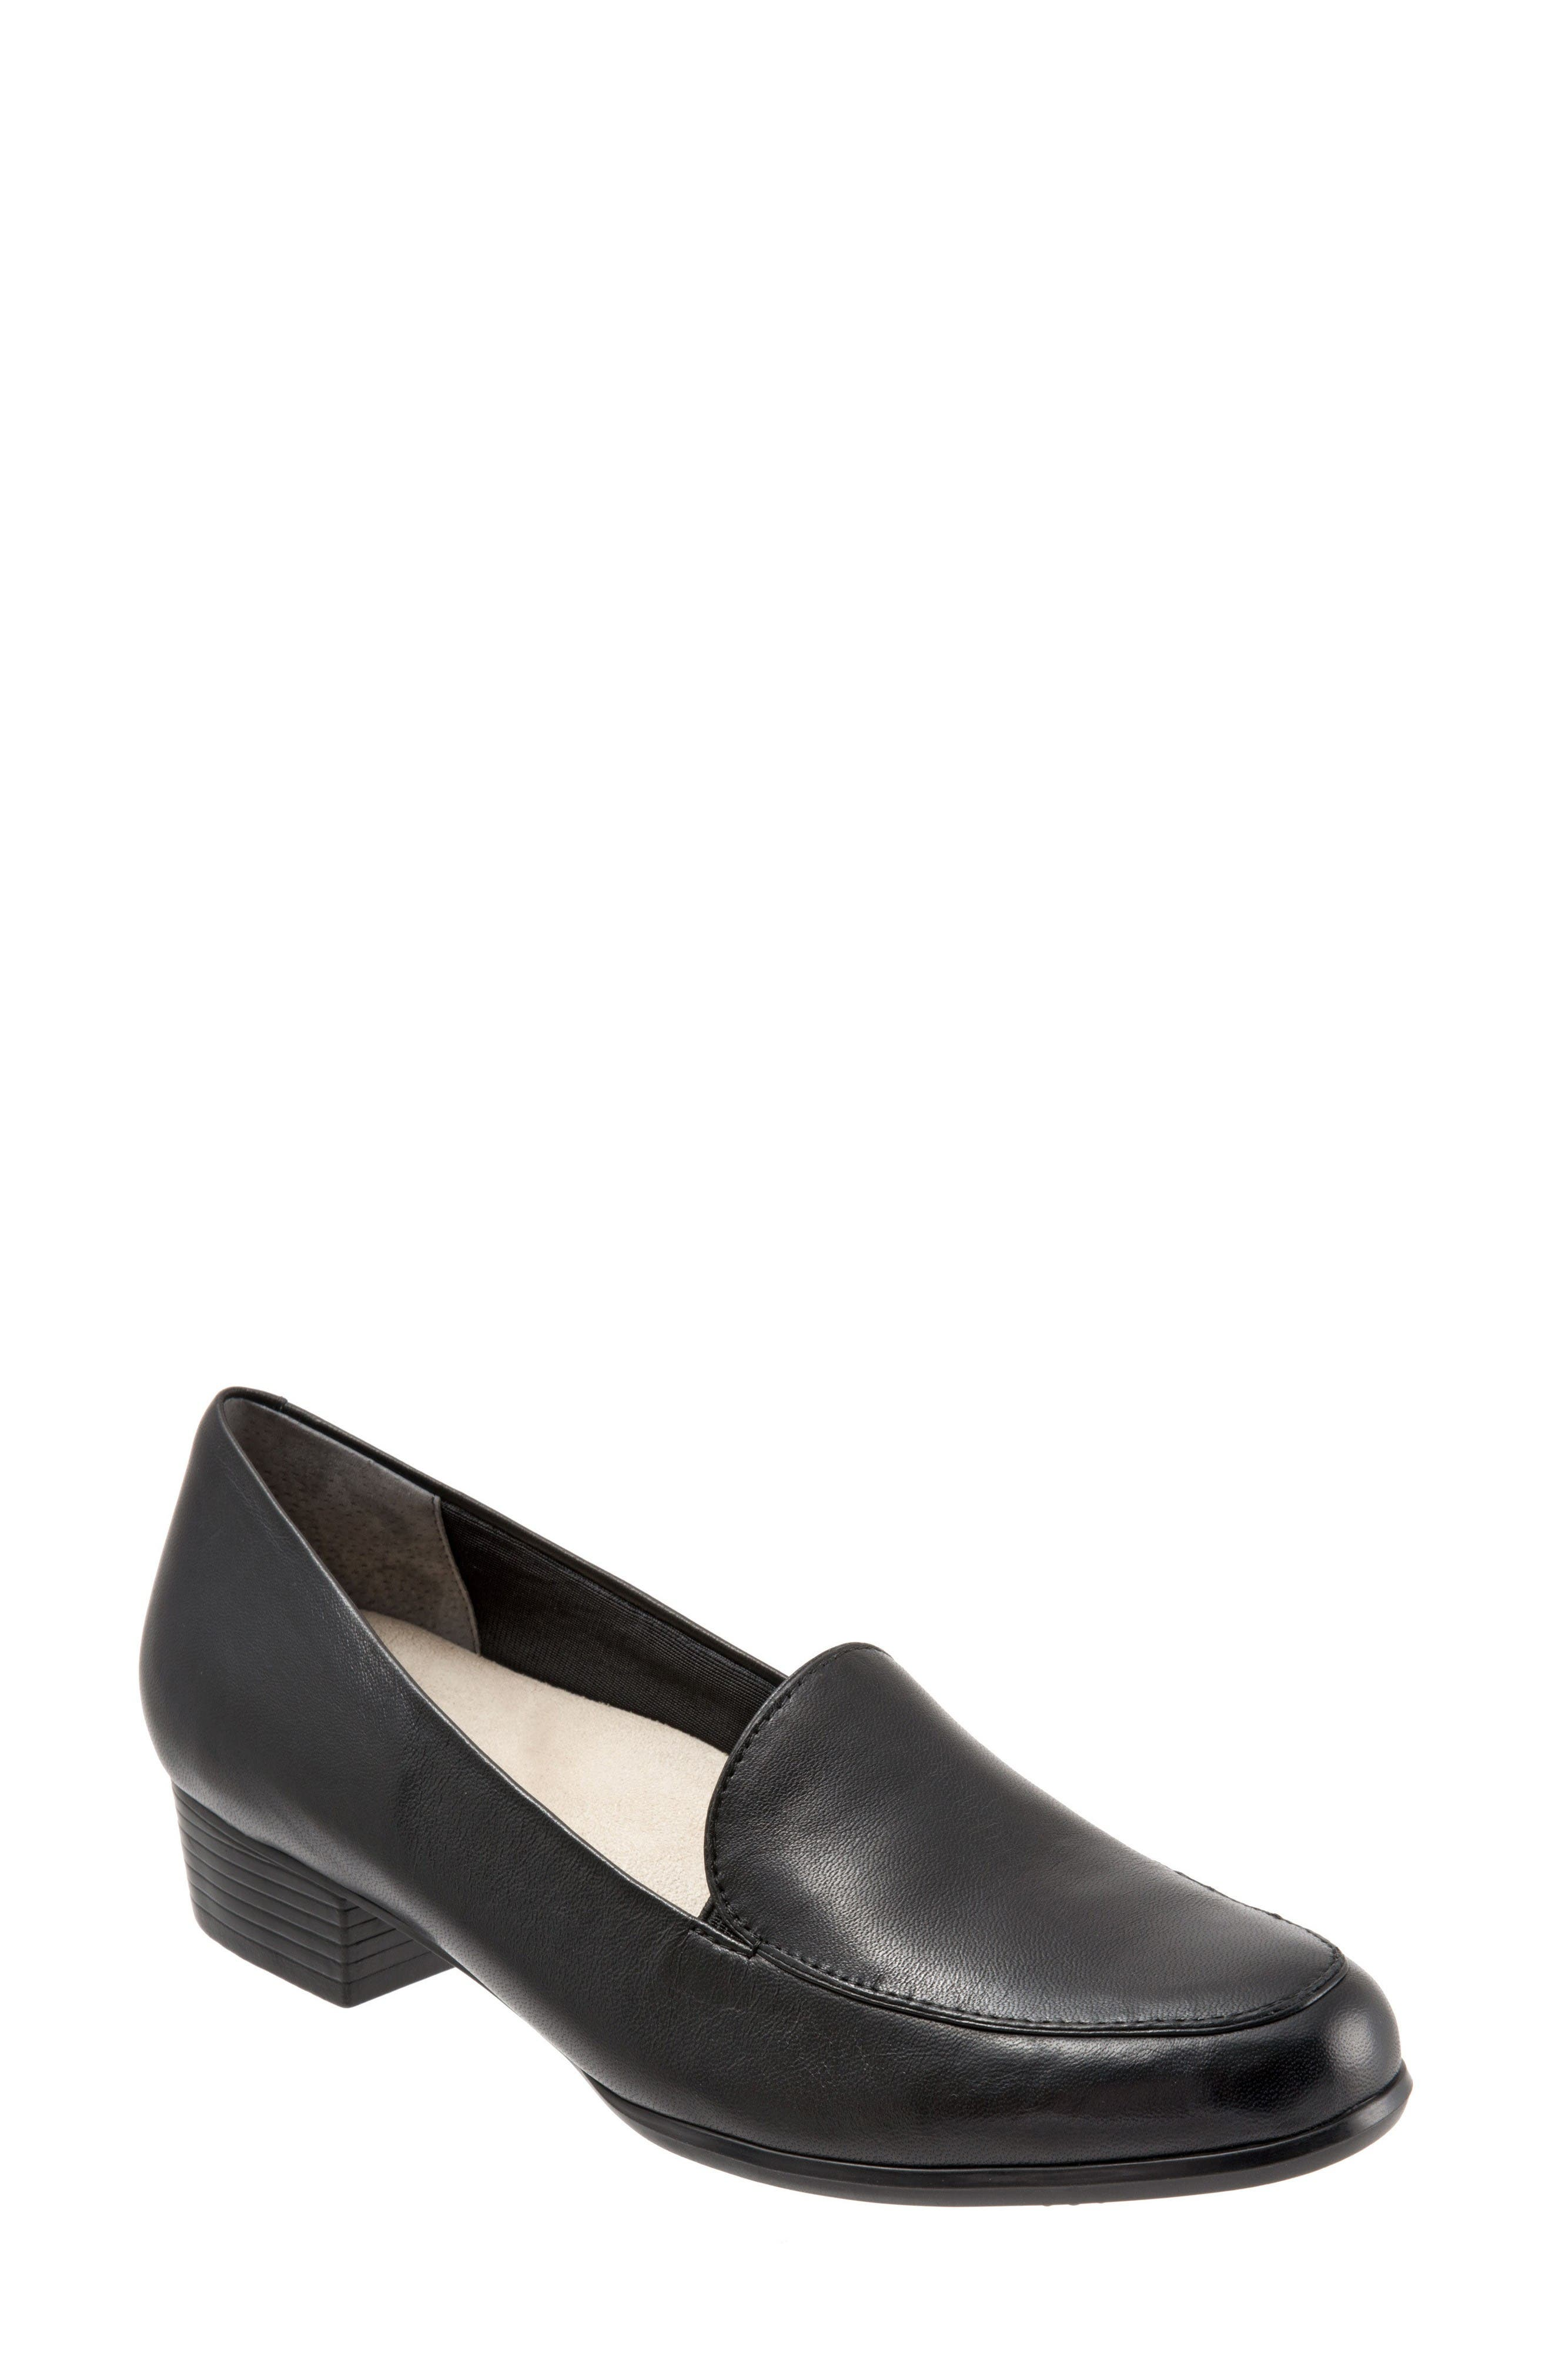 Main Image - Trotters Monarch Loafer (Women)